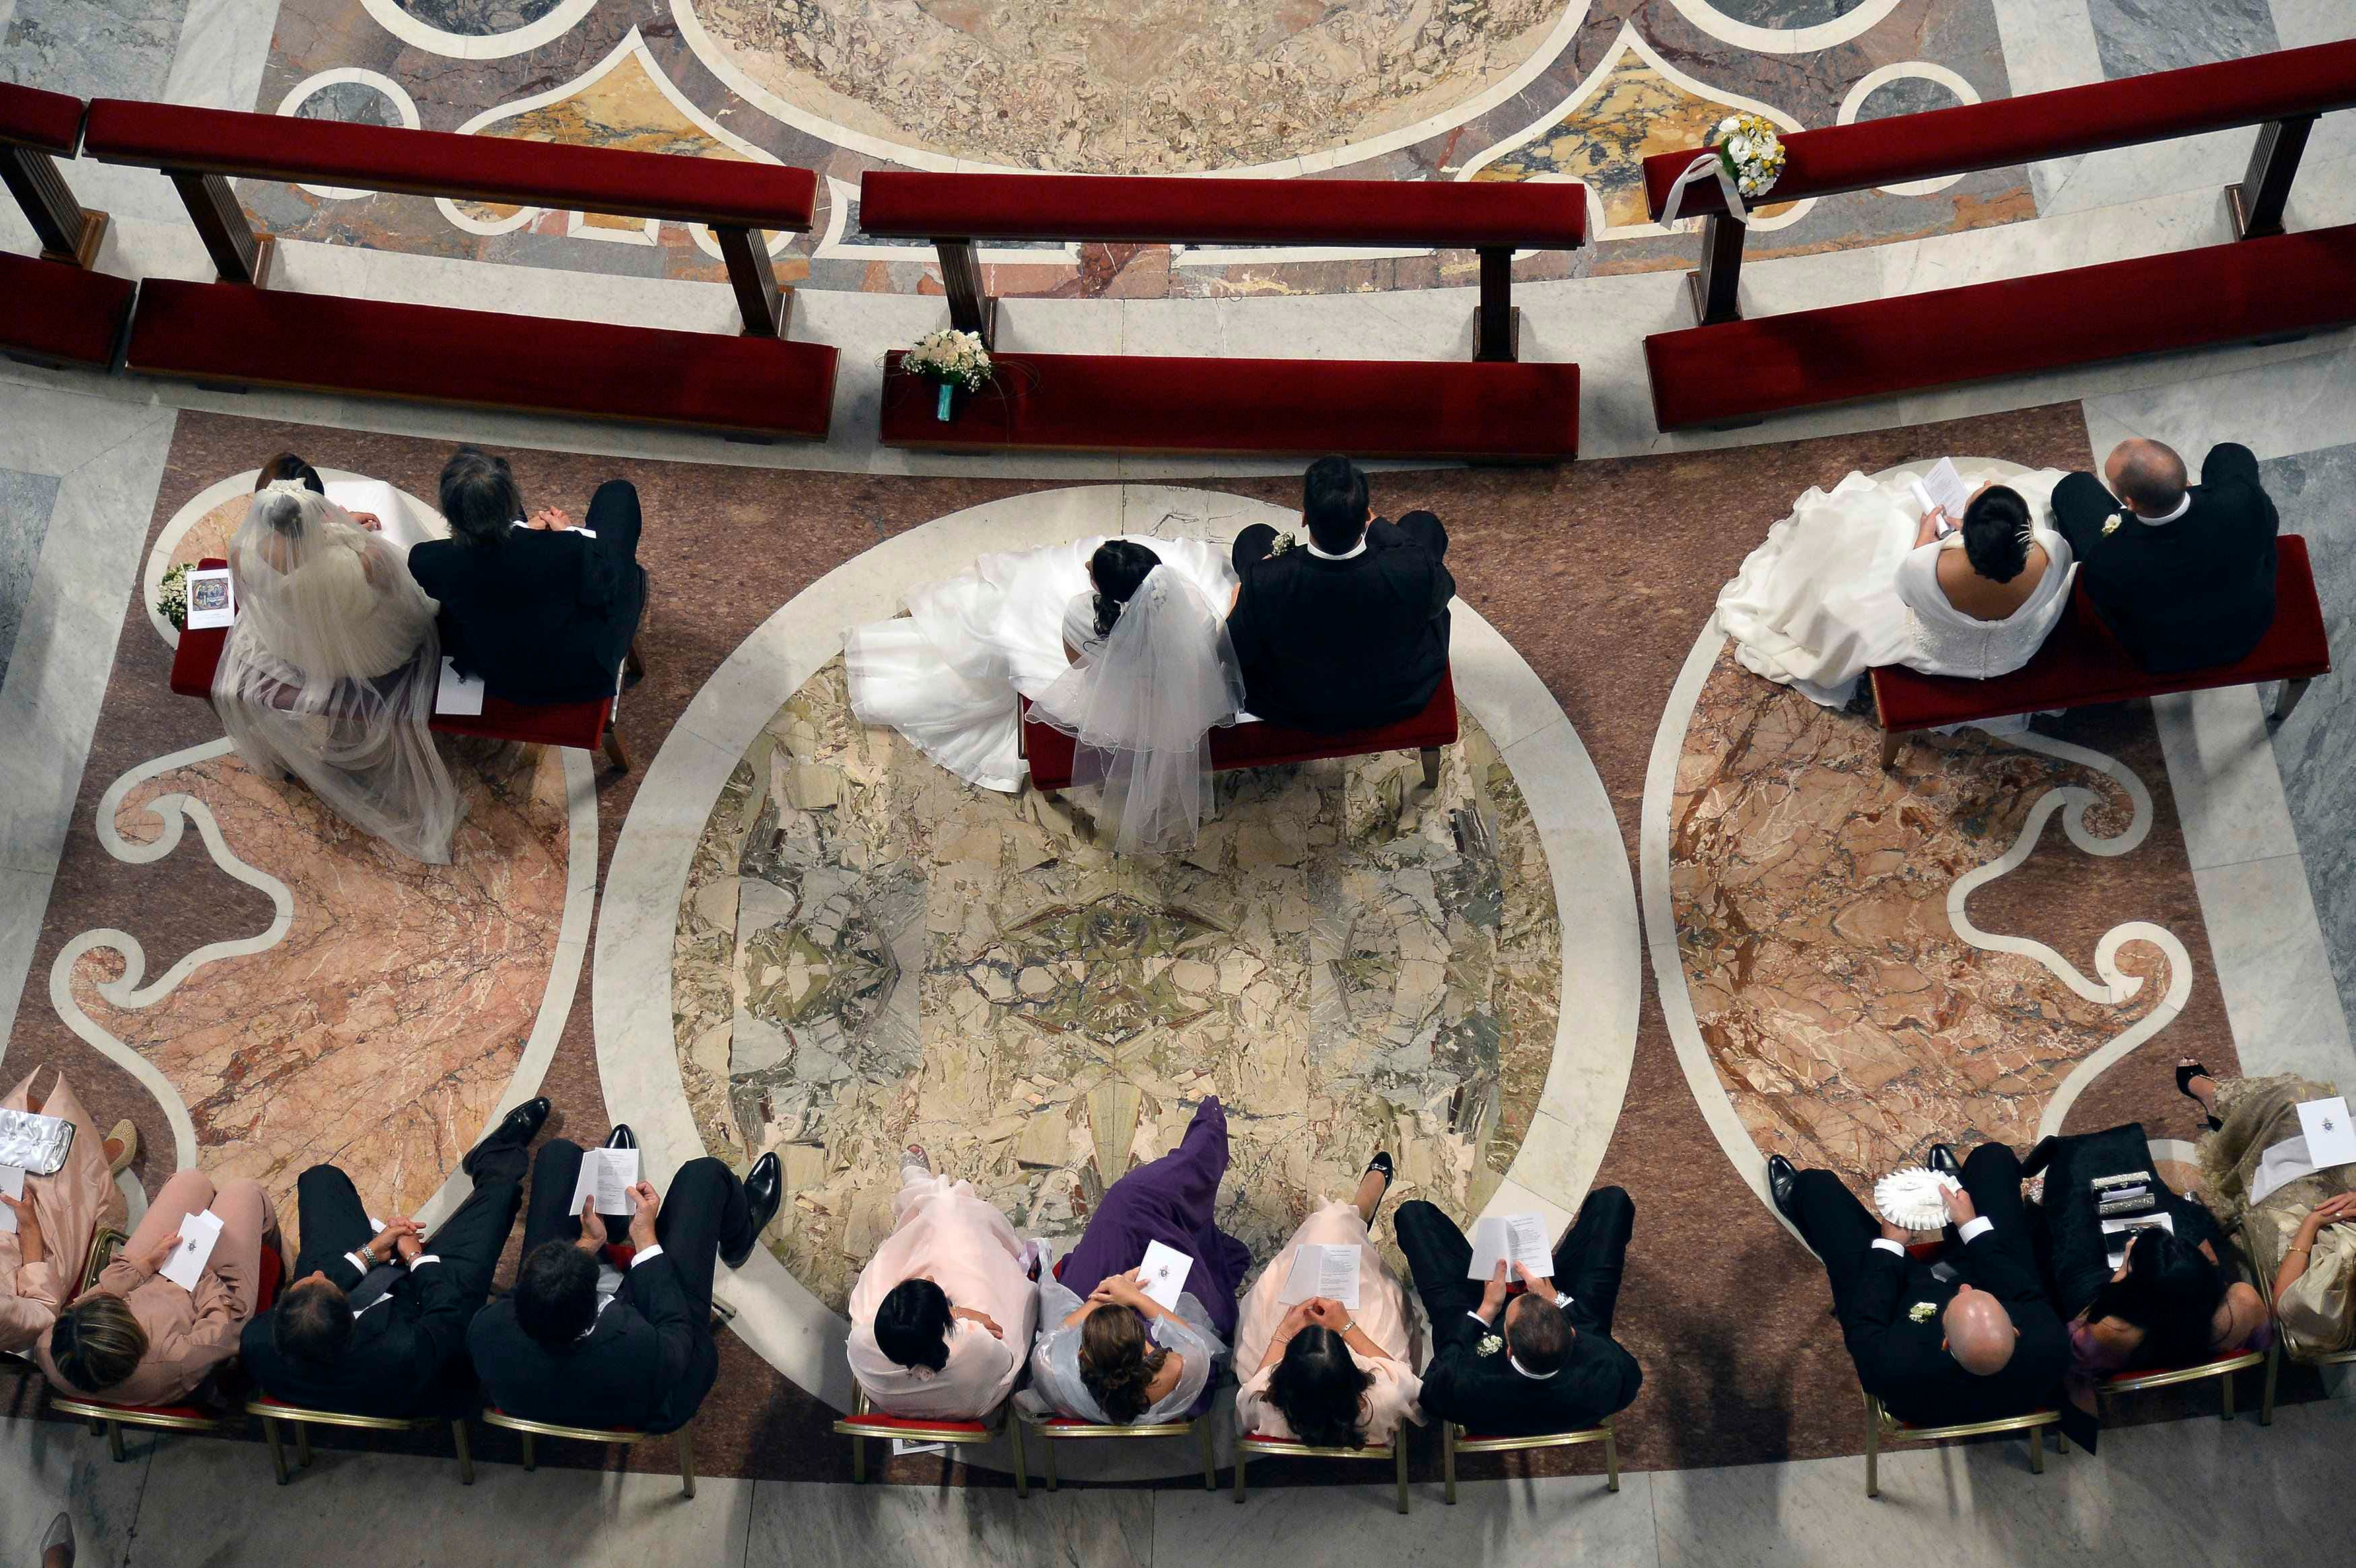 Pope Francis officiated a mass at the wedding of 20 couples in St.Peter's Basilica at the Vatican, September 14, 2014. (Reuters)